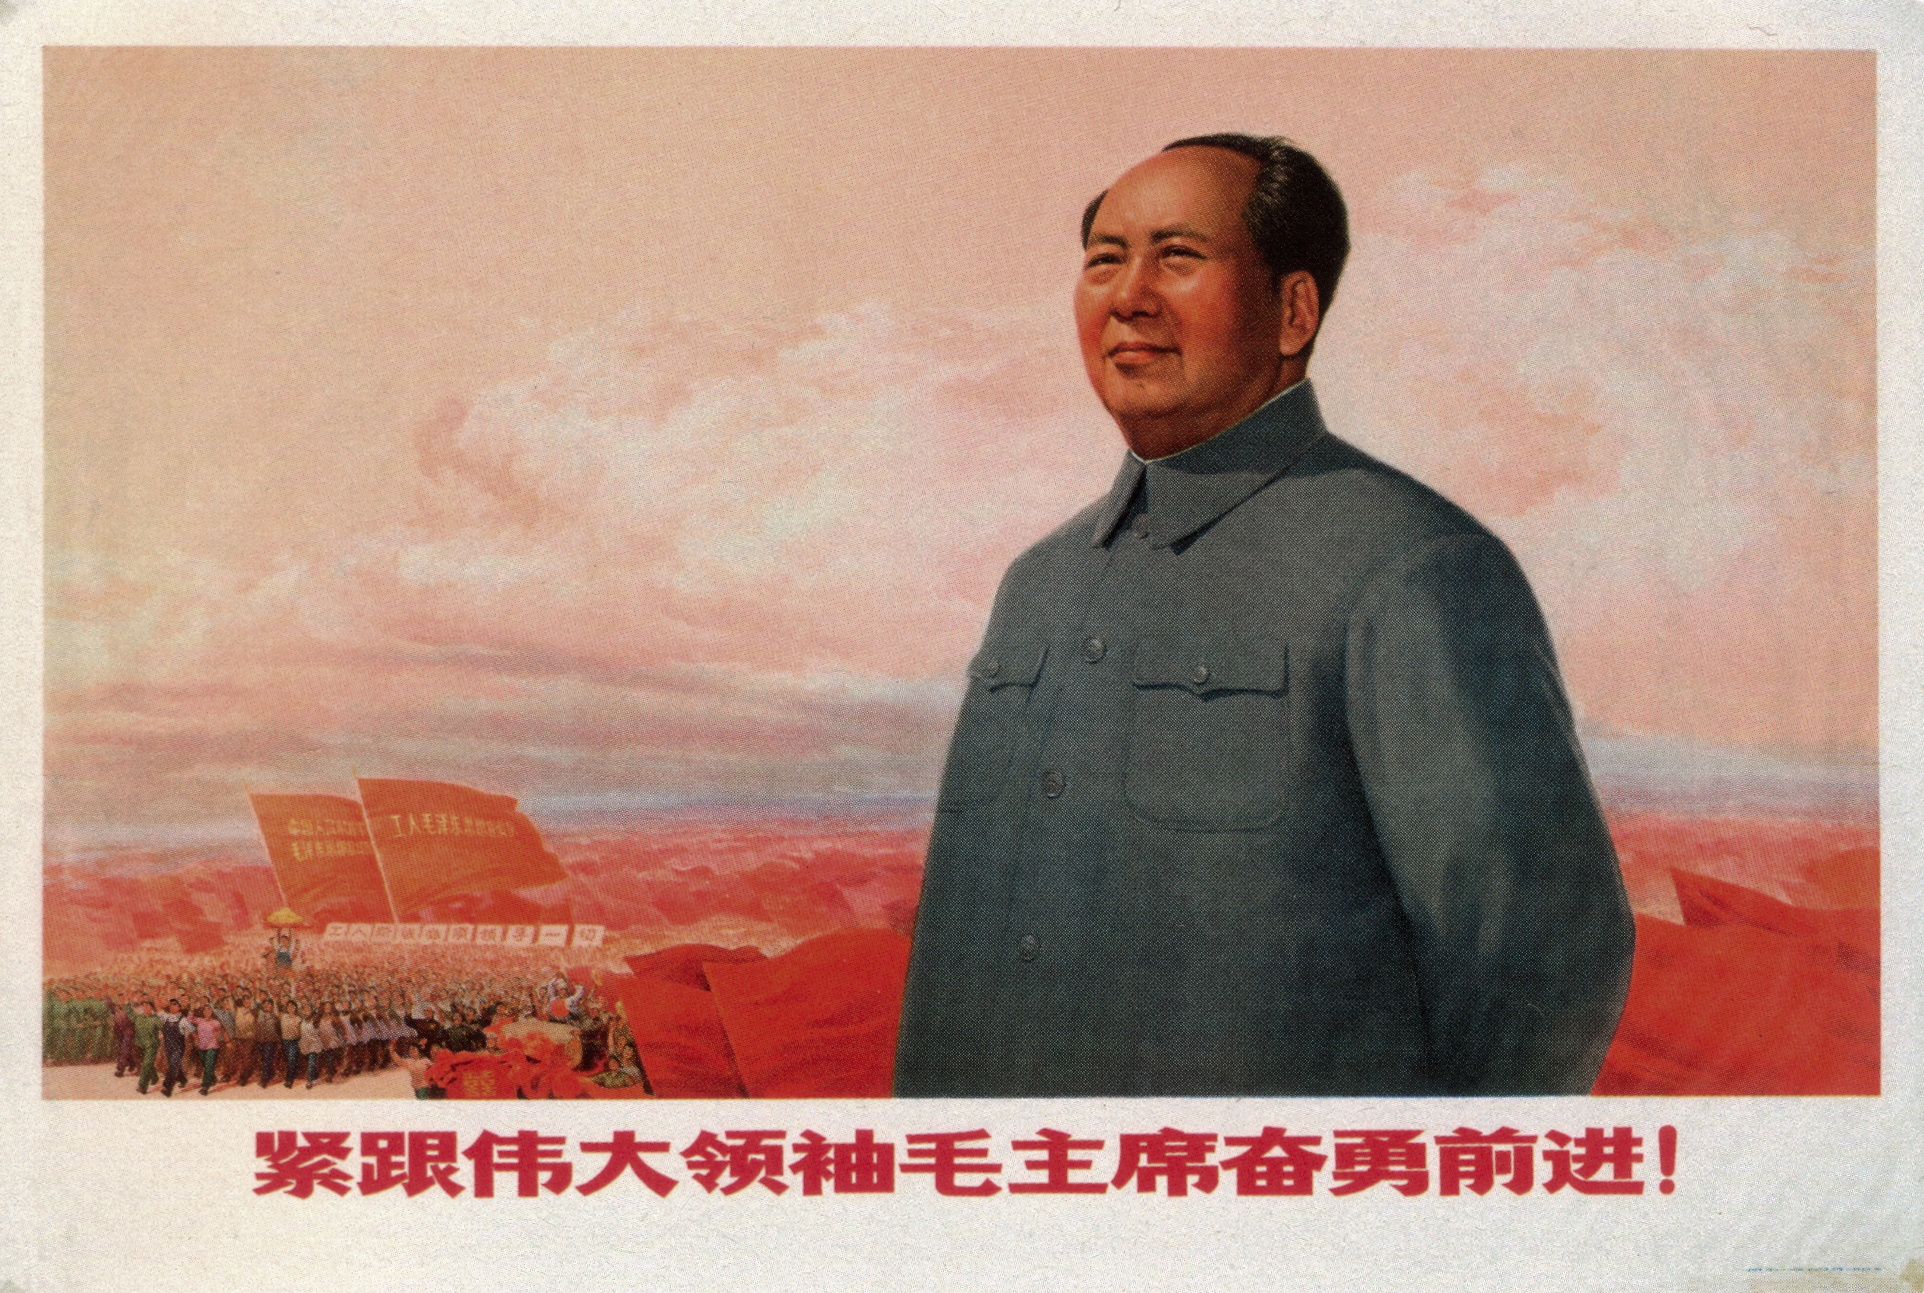 an analysis of mao tse tungs actions and their consequences in the people republic of china Mao zedong also known as mao tse-tung was a soldier, communist leader, and founding father of the people's republic of china he ruled china from 1949 until his death in 1976  mao zedong facts & worksheets mao zedong also known as mao tse-tung was a soldier, communist leader, and founding father of the people's republic of china.